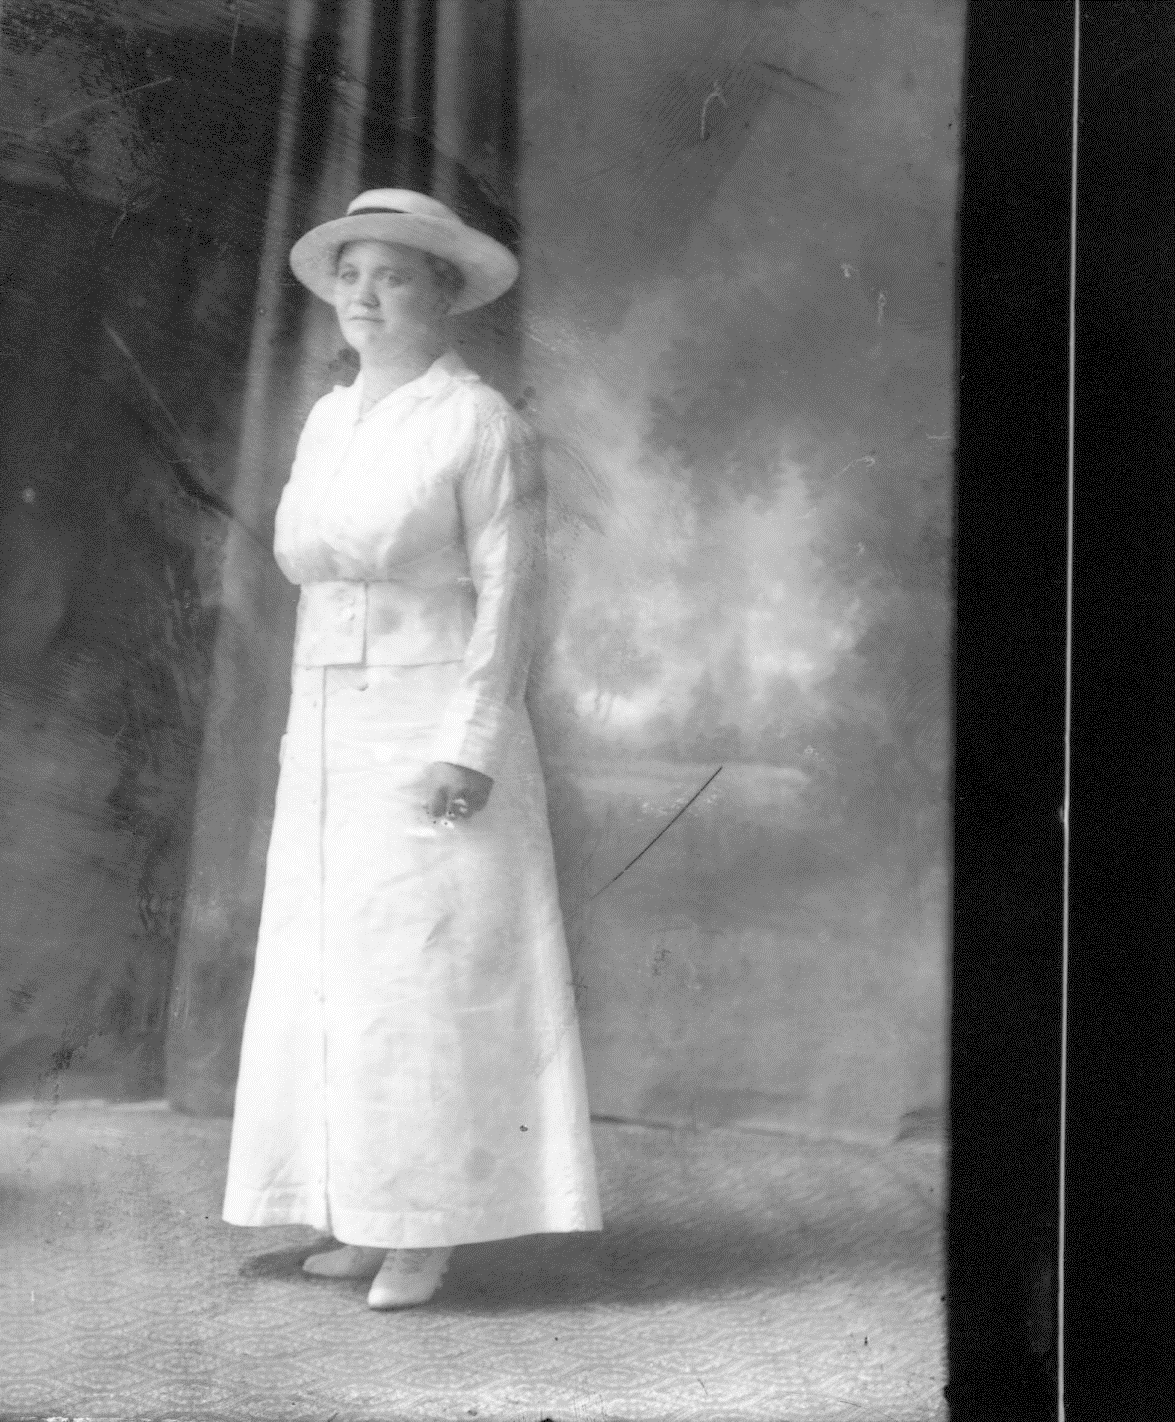 photo of Unidentified Woman in a White Dress